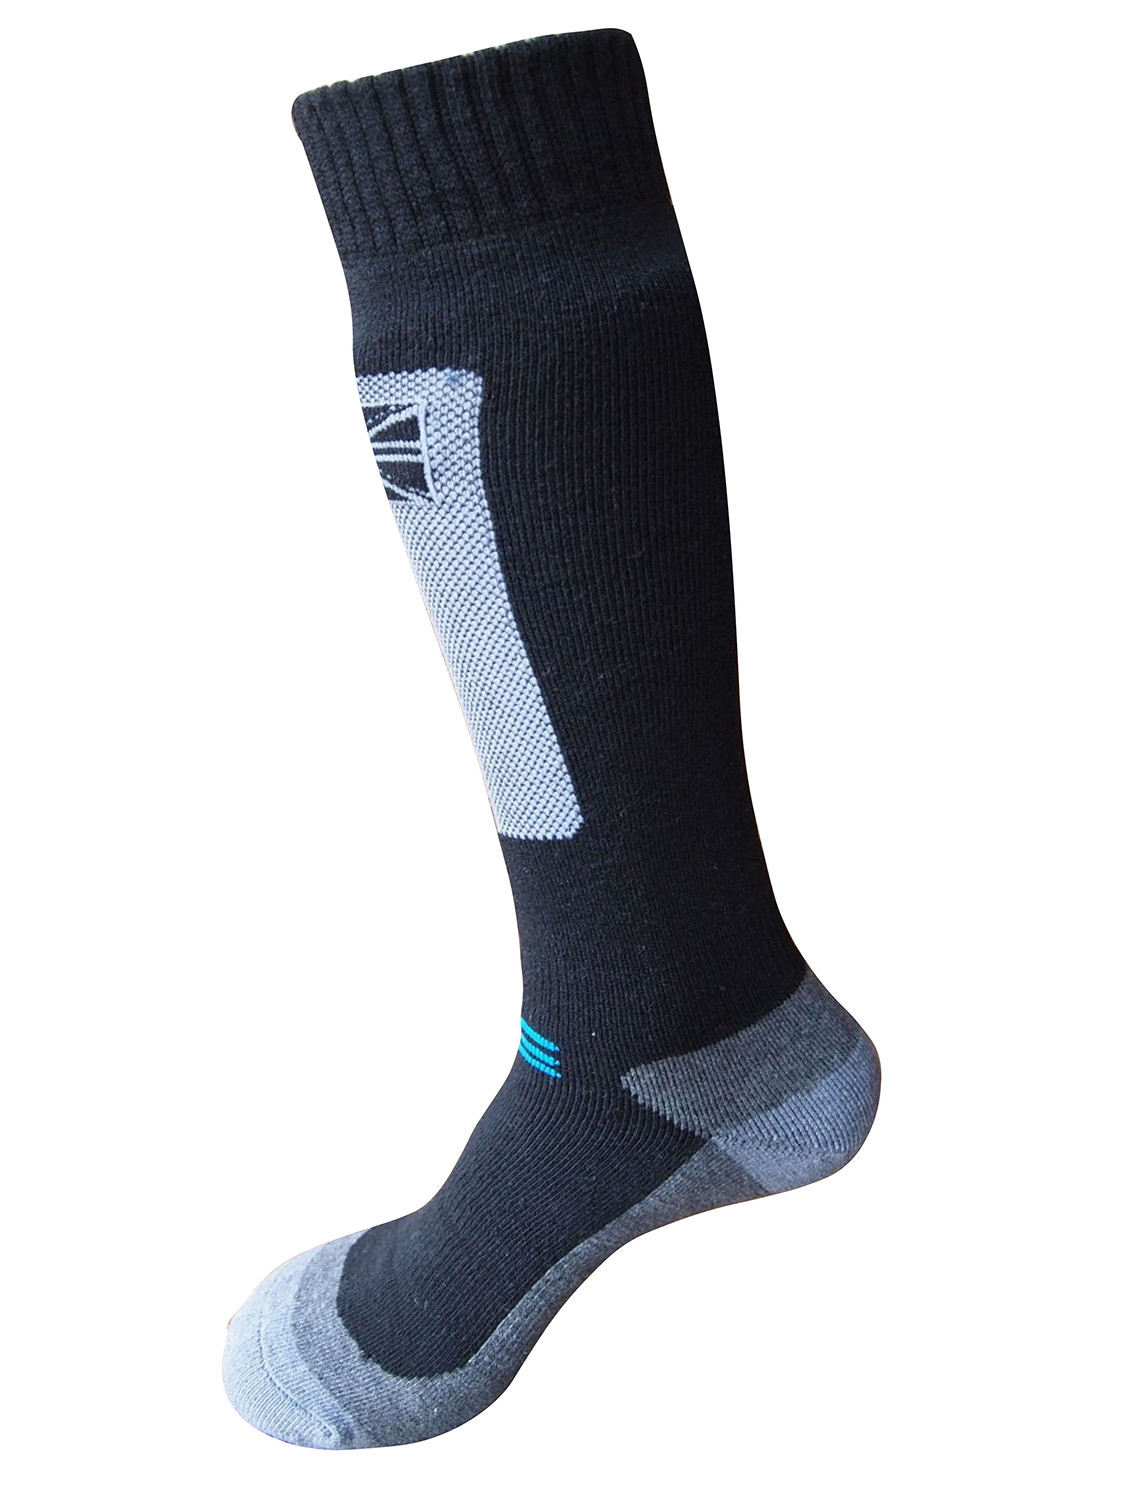 Endurance Merino 3 Pack Ski Sock